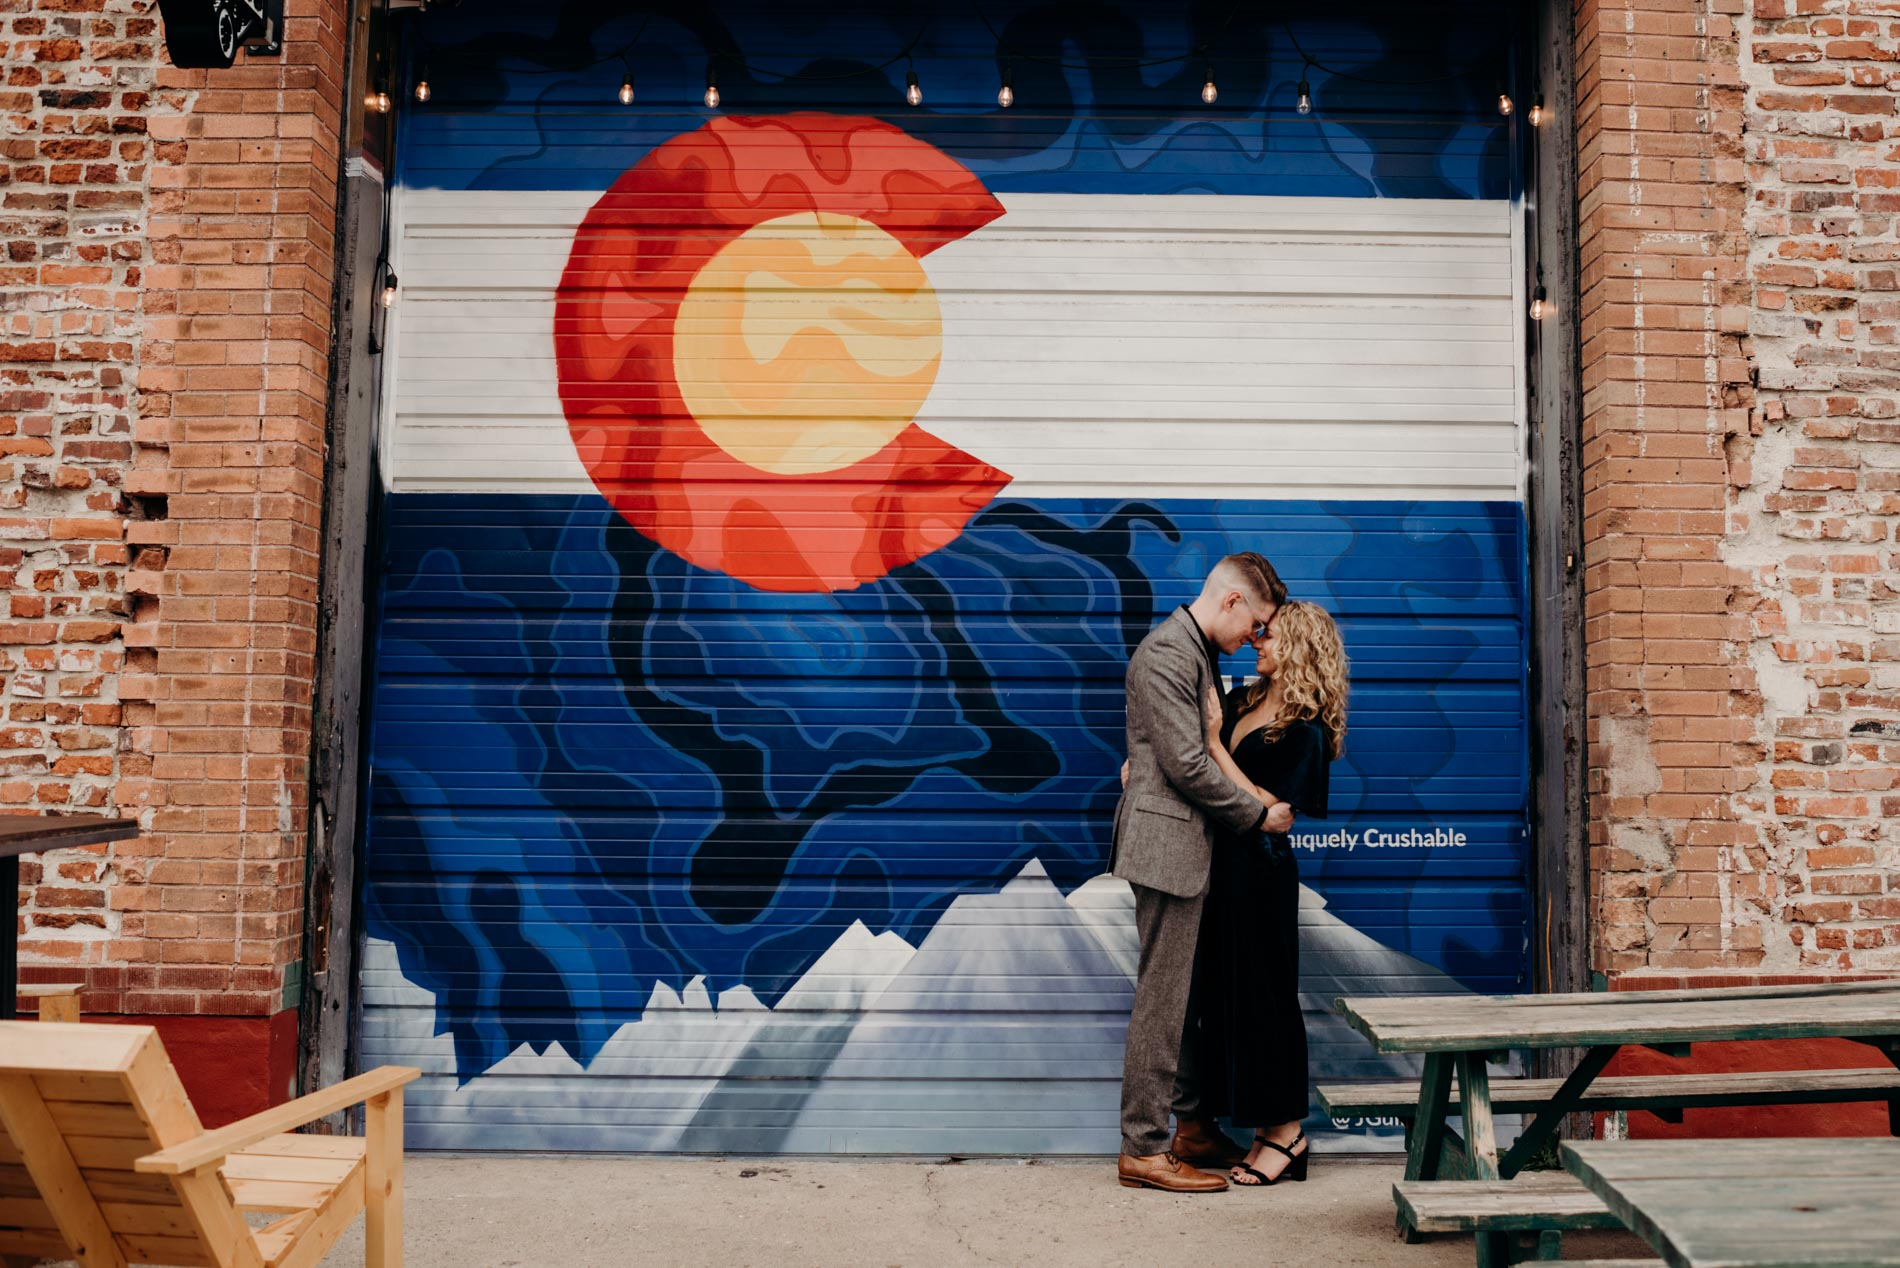 rino-engagement-rino-wedding-urban-denver-wedding-urban-denver-wedding-photography-urban-denver-wedding-photographer-downtown-denver-wedding-photography-downtown-denver-wedding-photographer-downtown-denver-wedding-package-downtown-denver-wedding-venue-Adventure-Elopement-Photographer-Adventurous-Elopement-Photograph-Adventurous-Elopement-Photographer-Adventurous-Destination-Elopement-Photographer-Destination-Elopement-Photography-Destination-Colorado-Elopement-Colorado-Elopement-Photographer